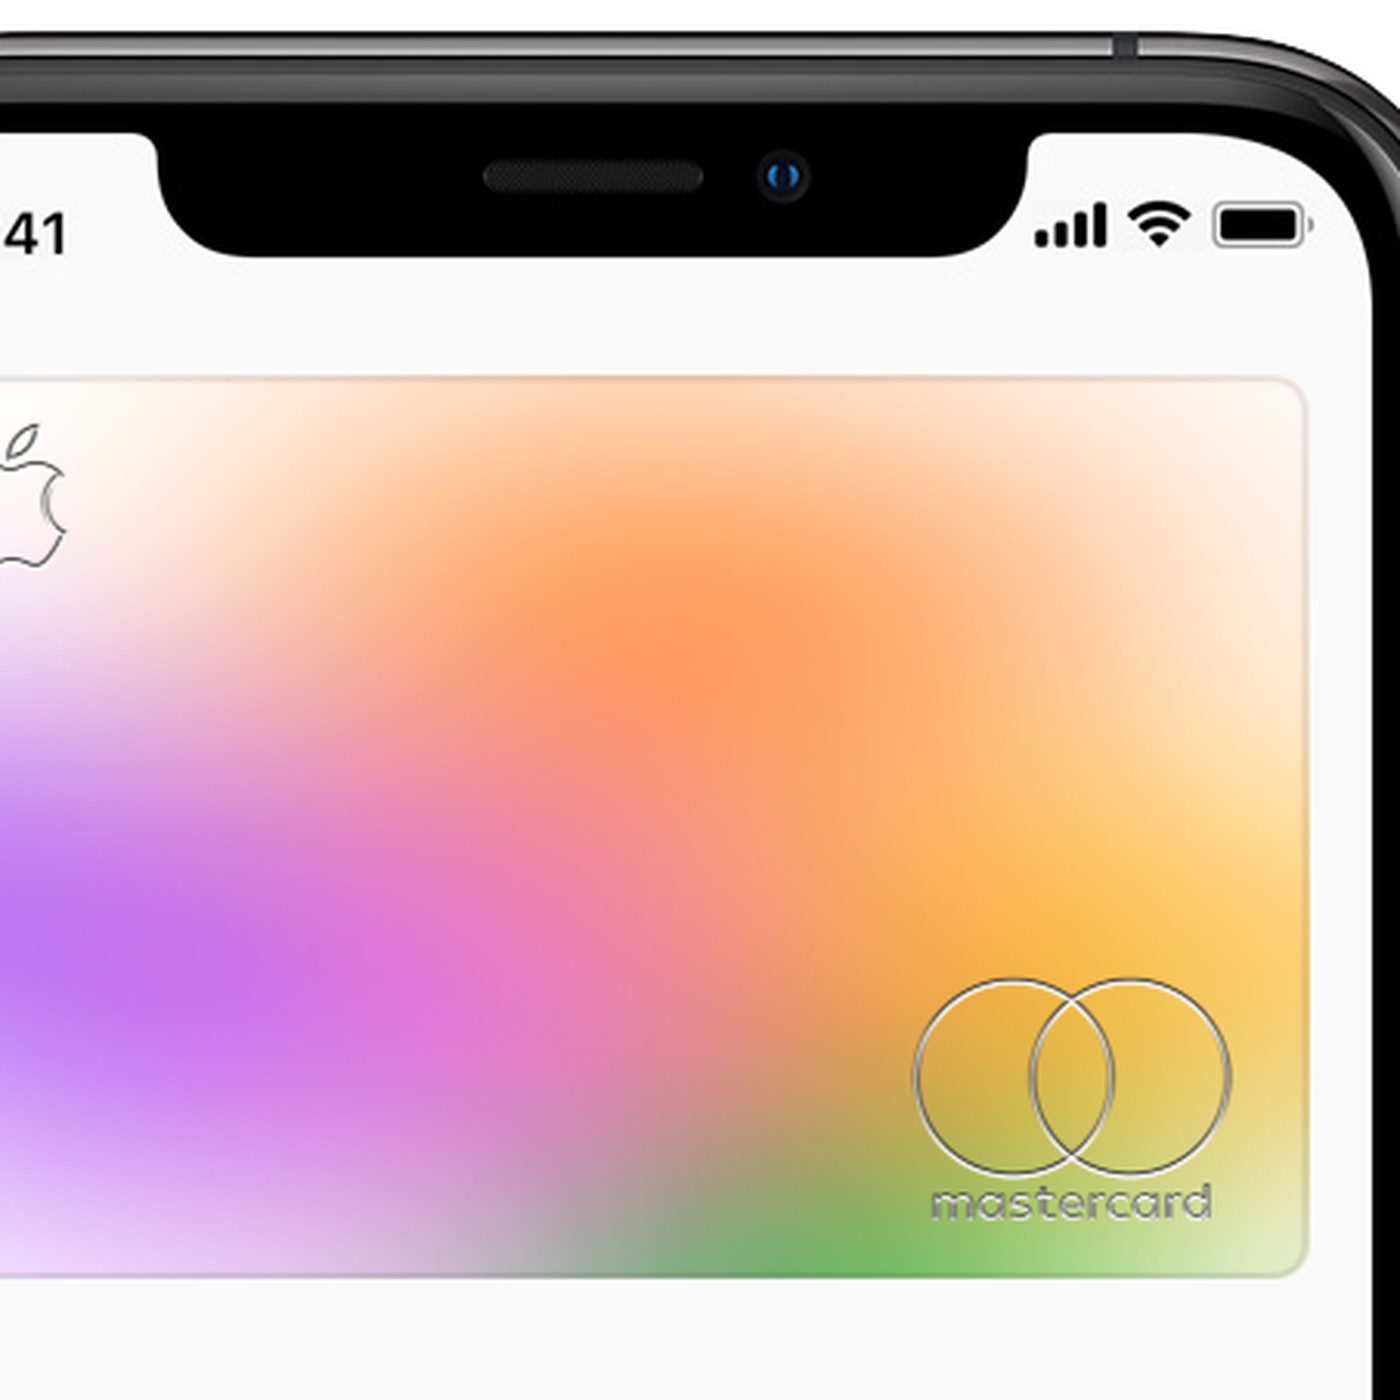 Apple S New Goldman Sachs Credit Card Launches On The Iphone